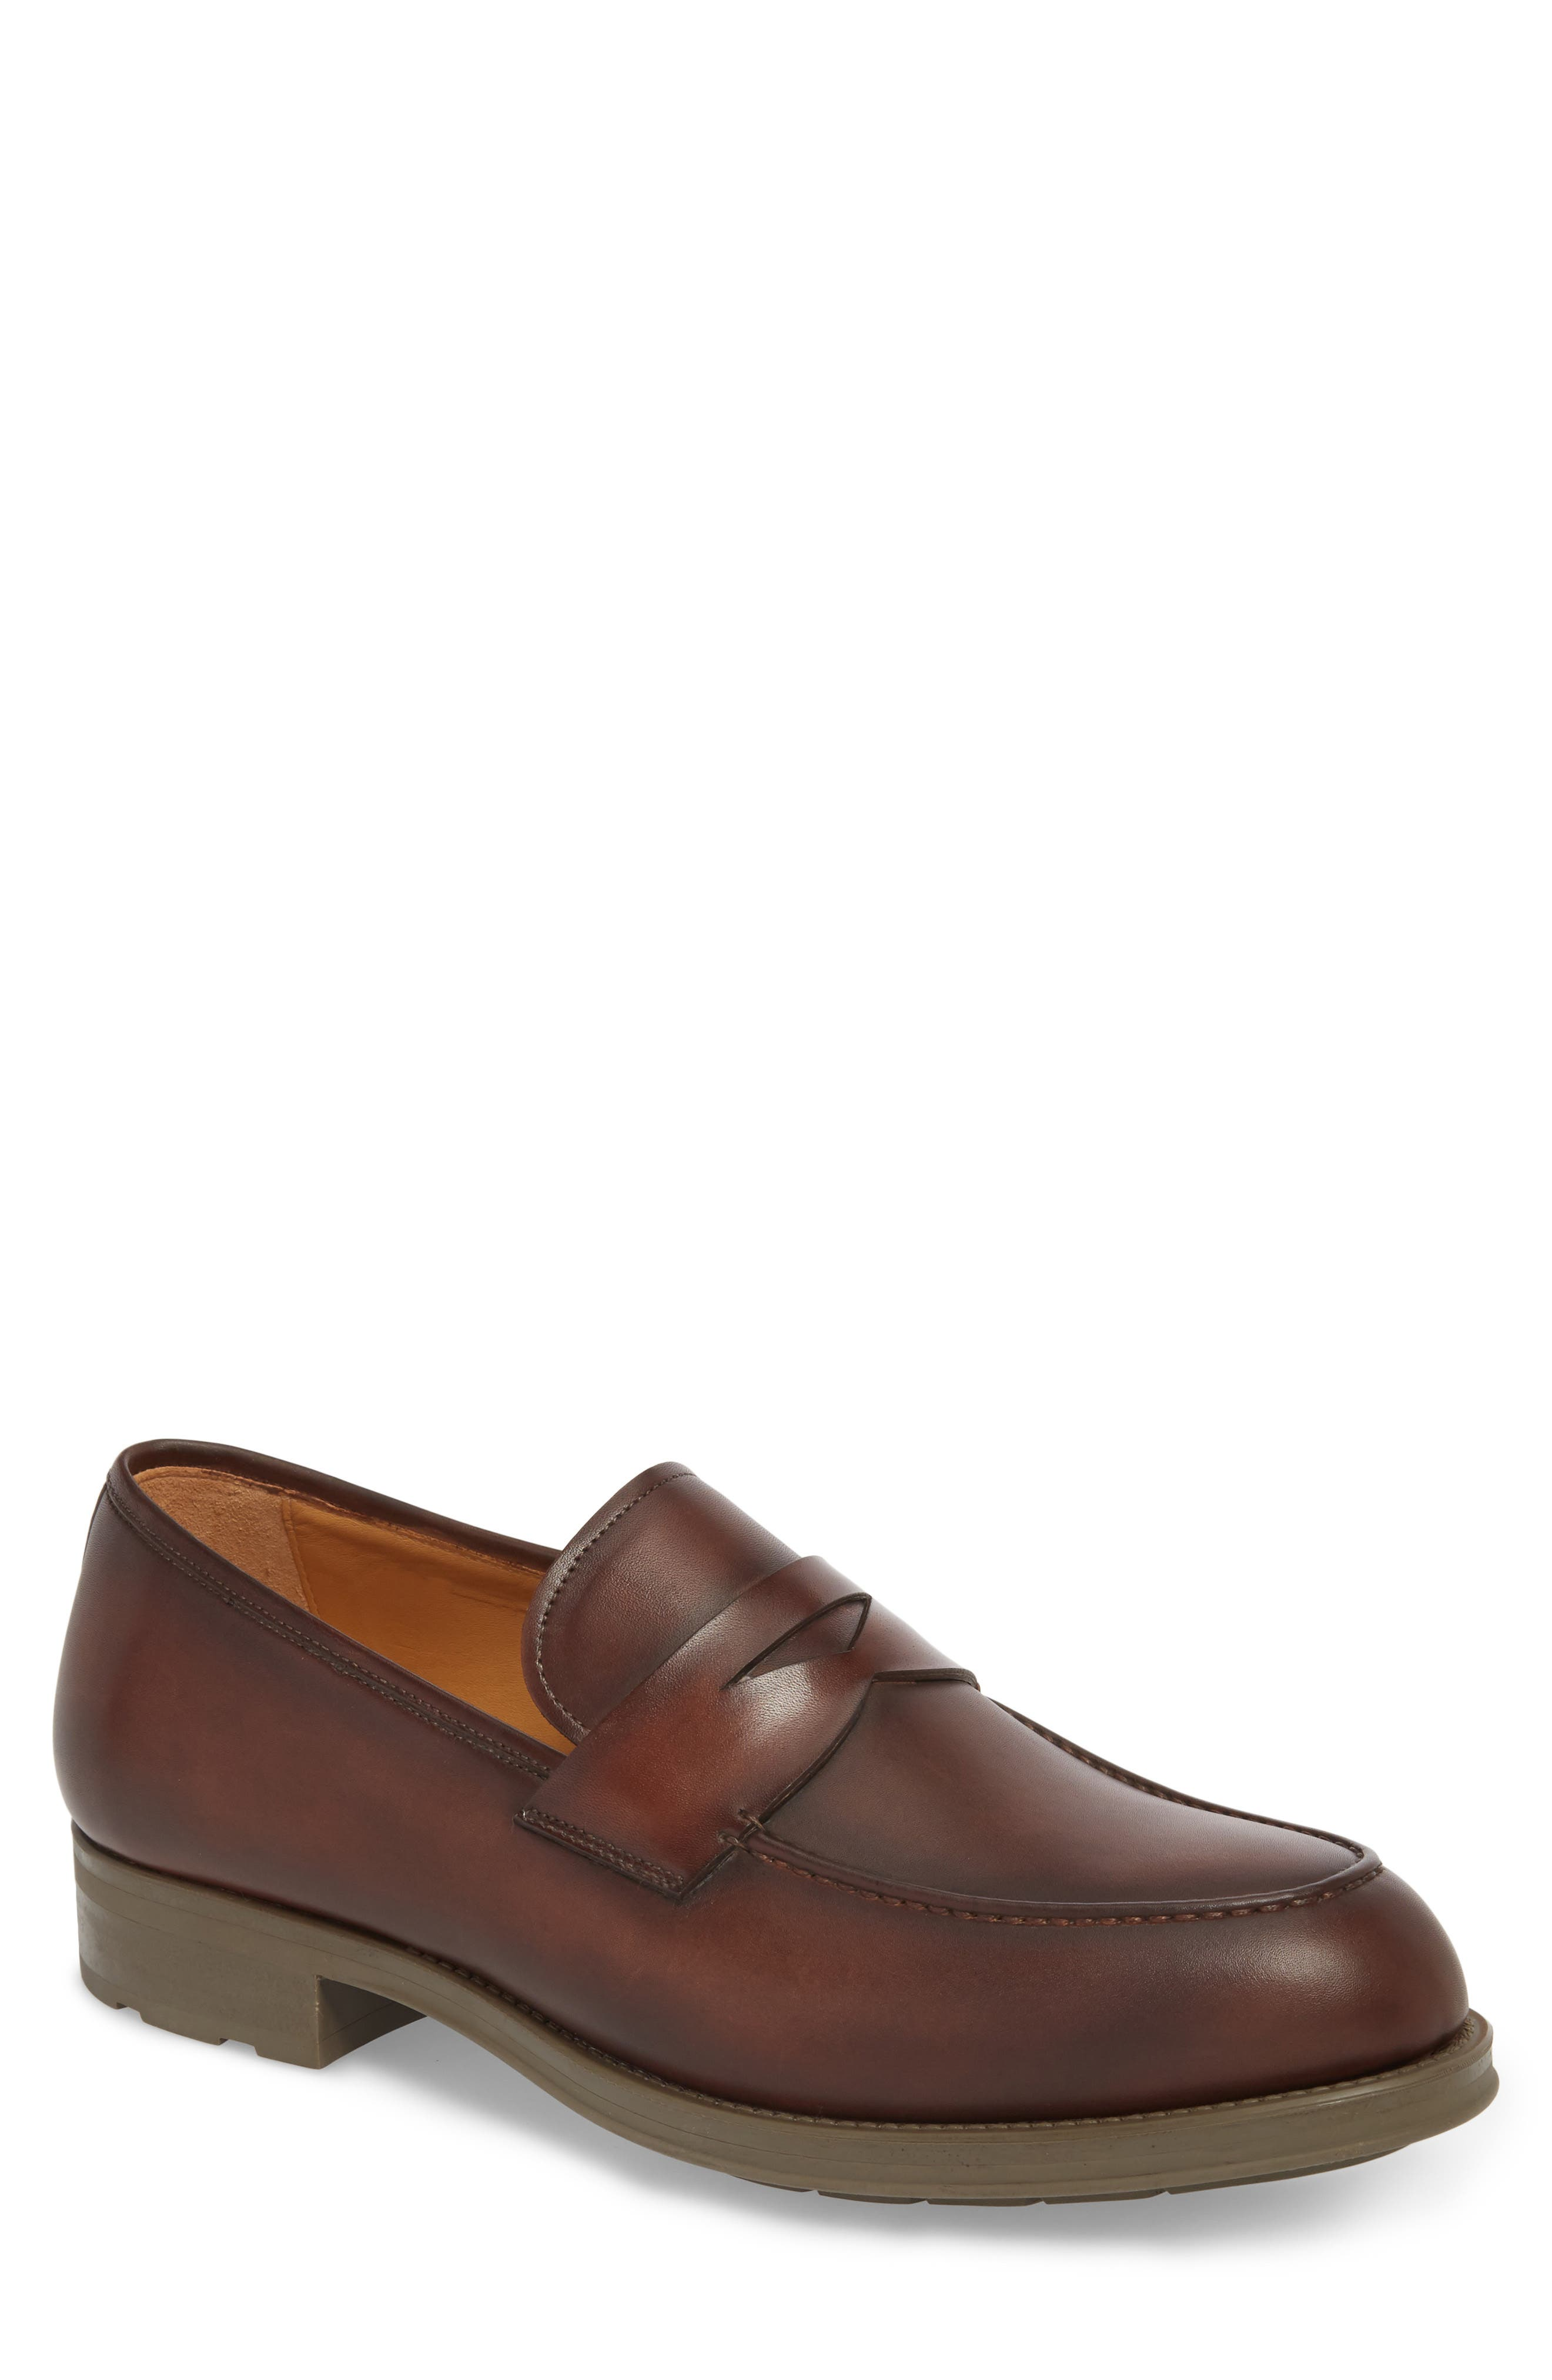 Bernardo Penny Loafer,                             Main thumbnail 1, color,                             Brown Leather